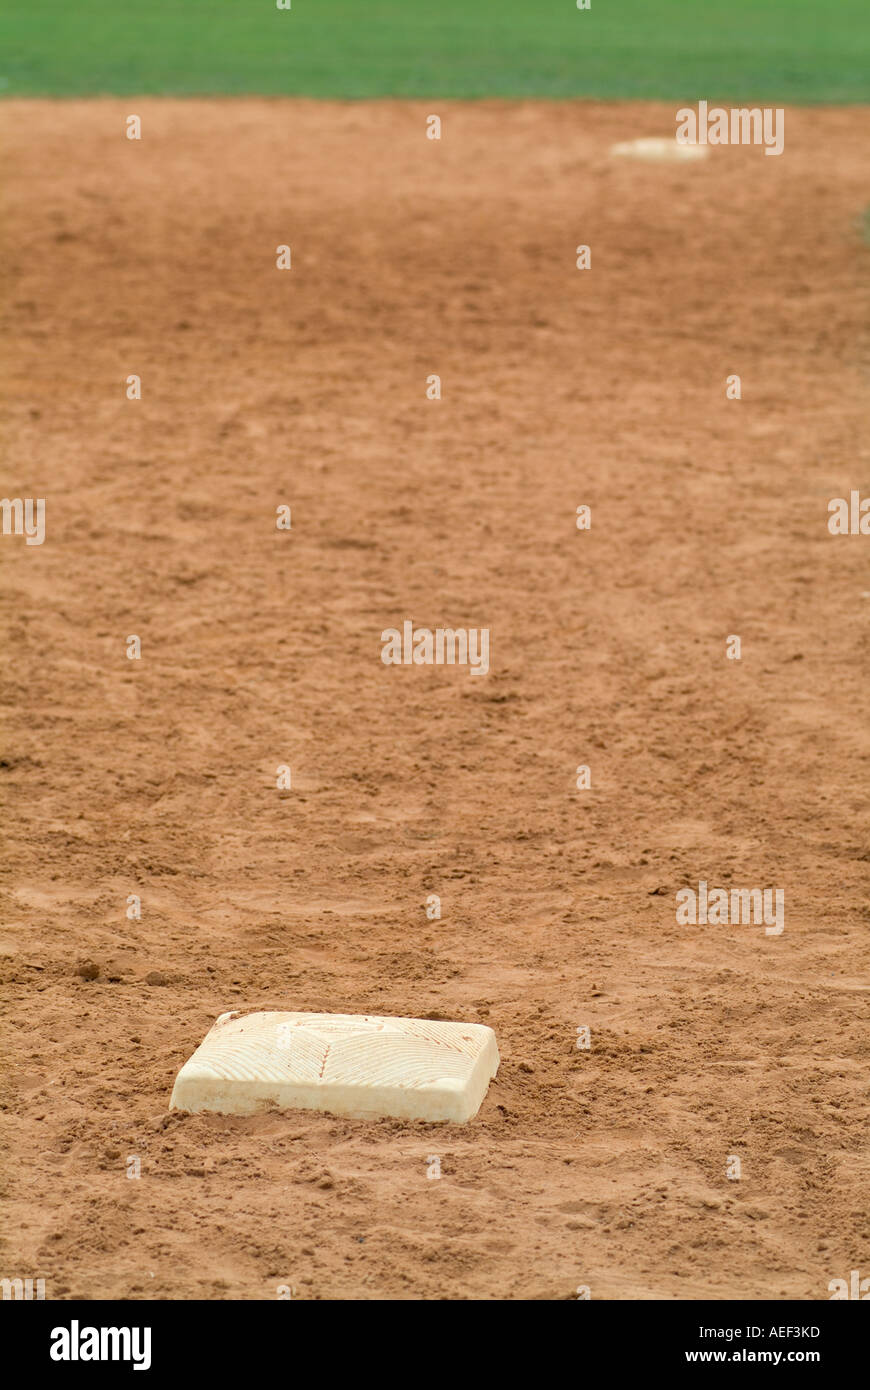 third base baseball sports sporting bases - Stock Image